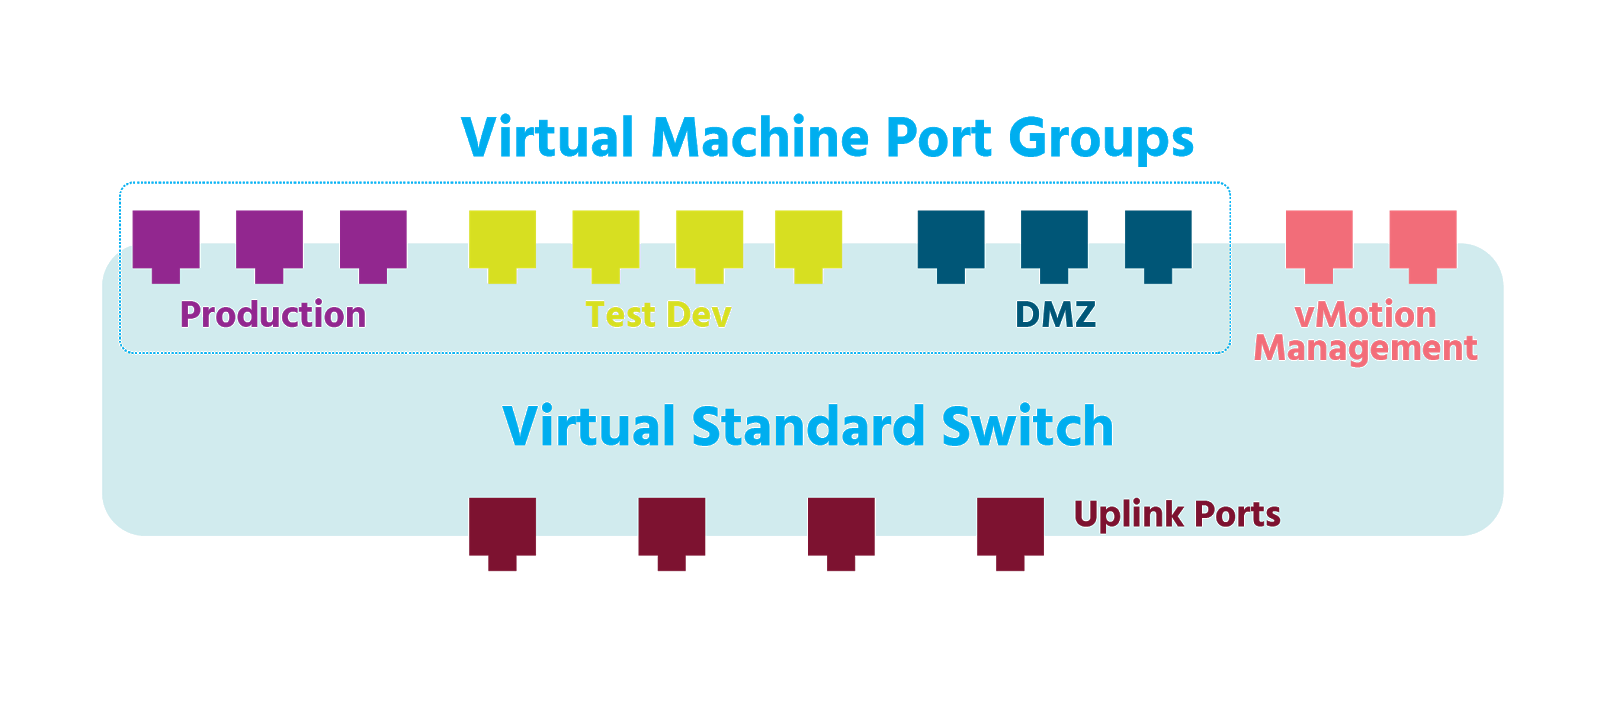 A host contains a virtual standard switch and has three VM port groups, two vMotion ports, and four uplink ports